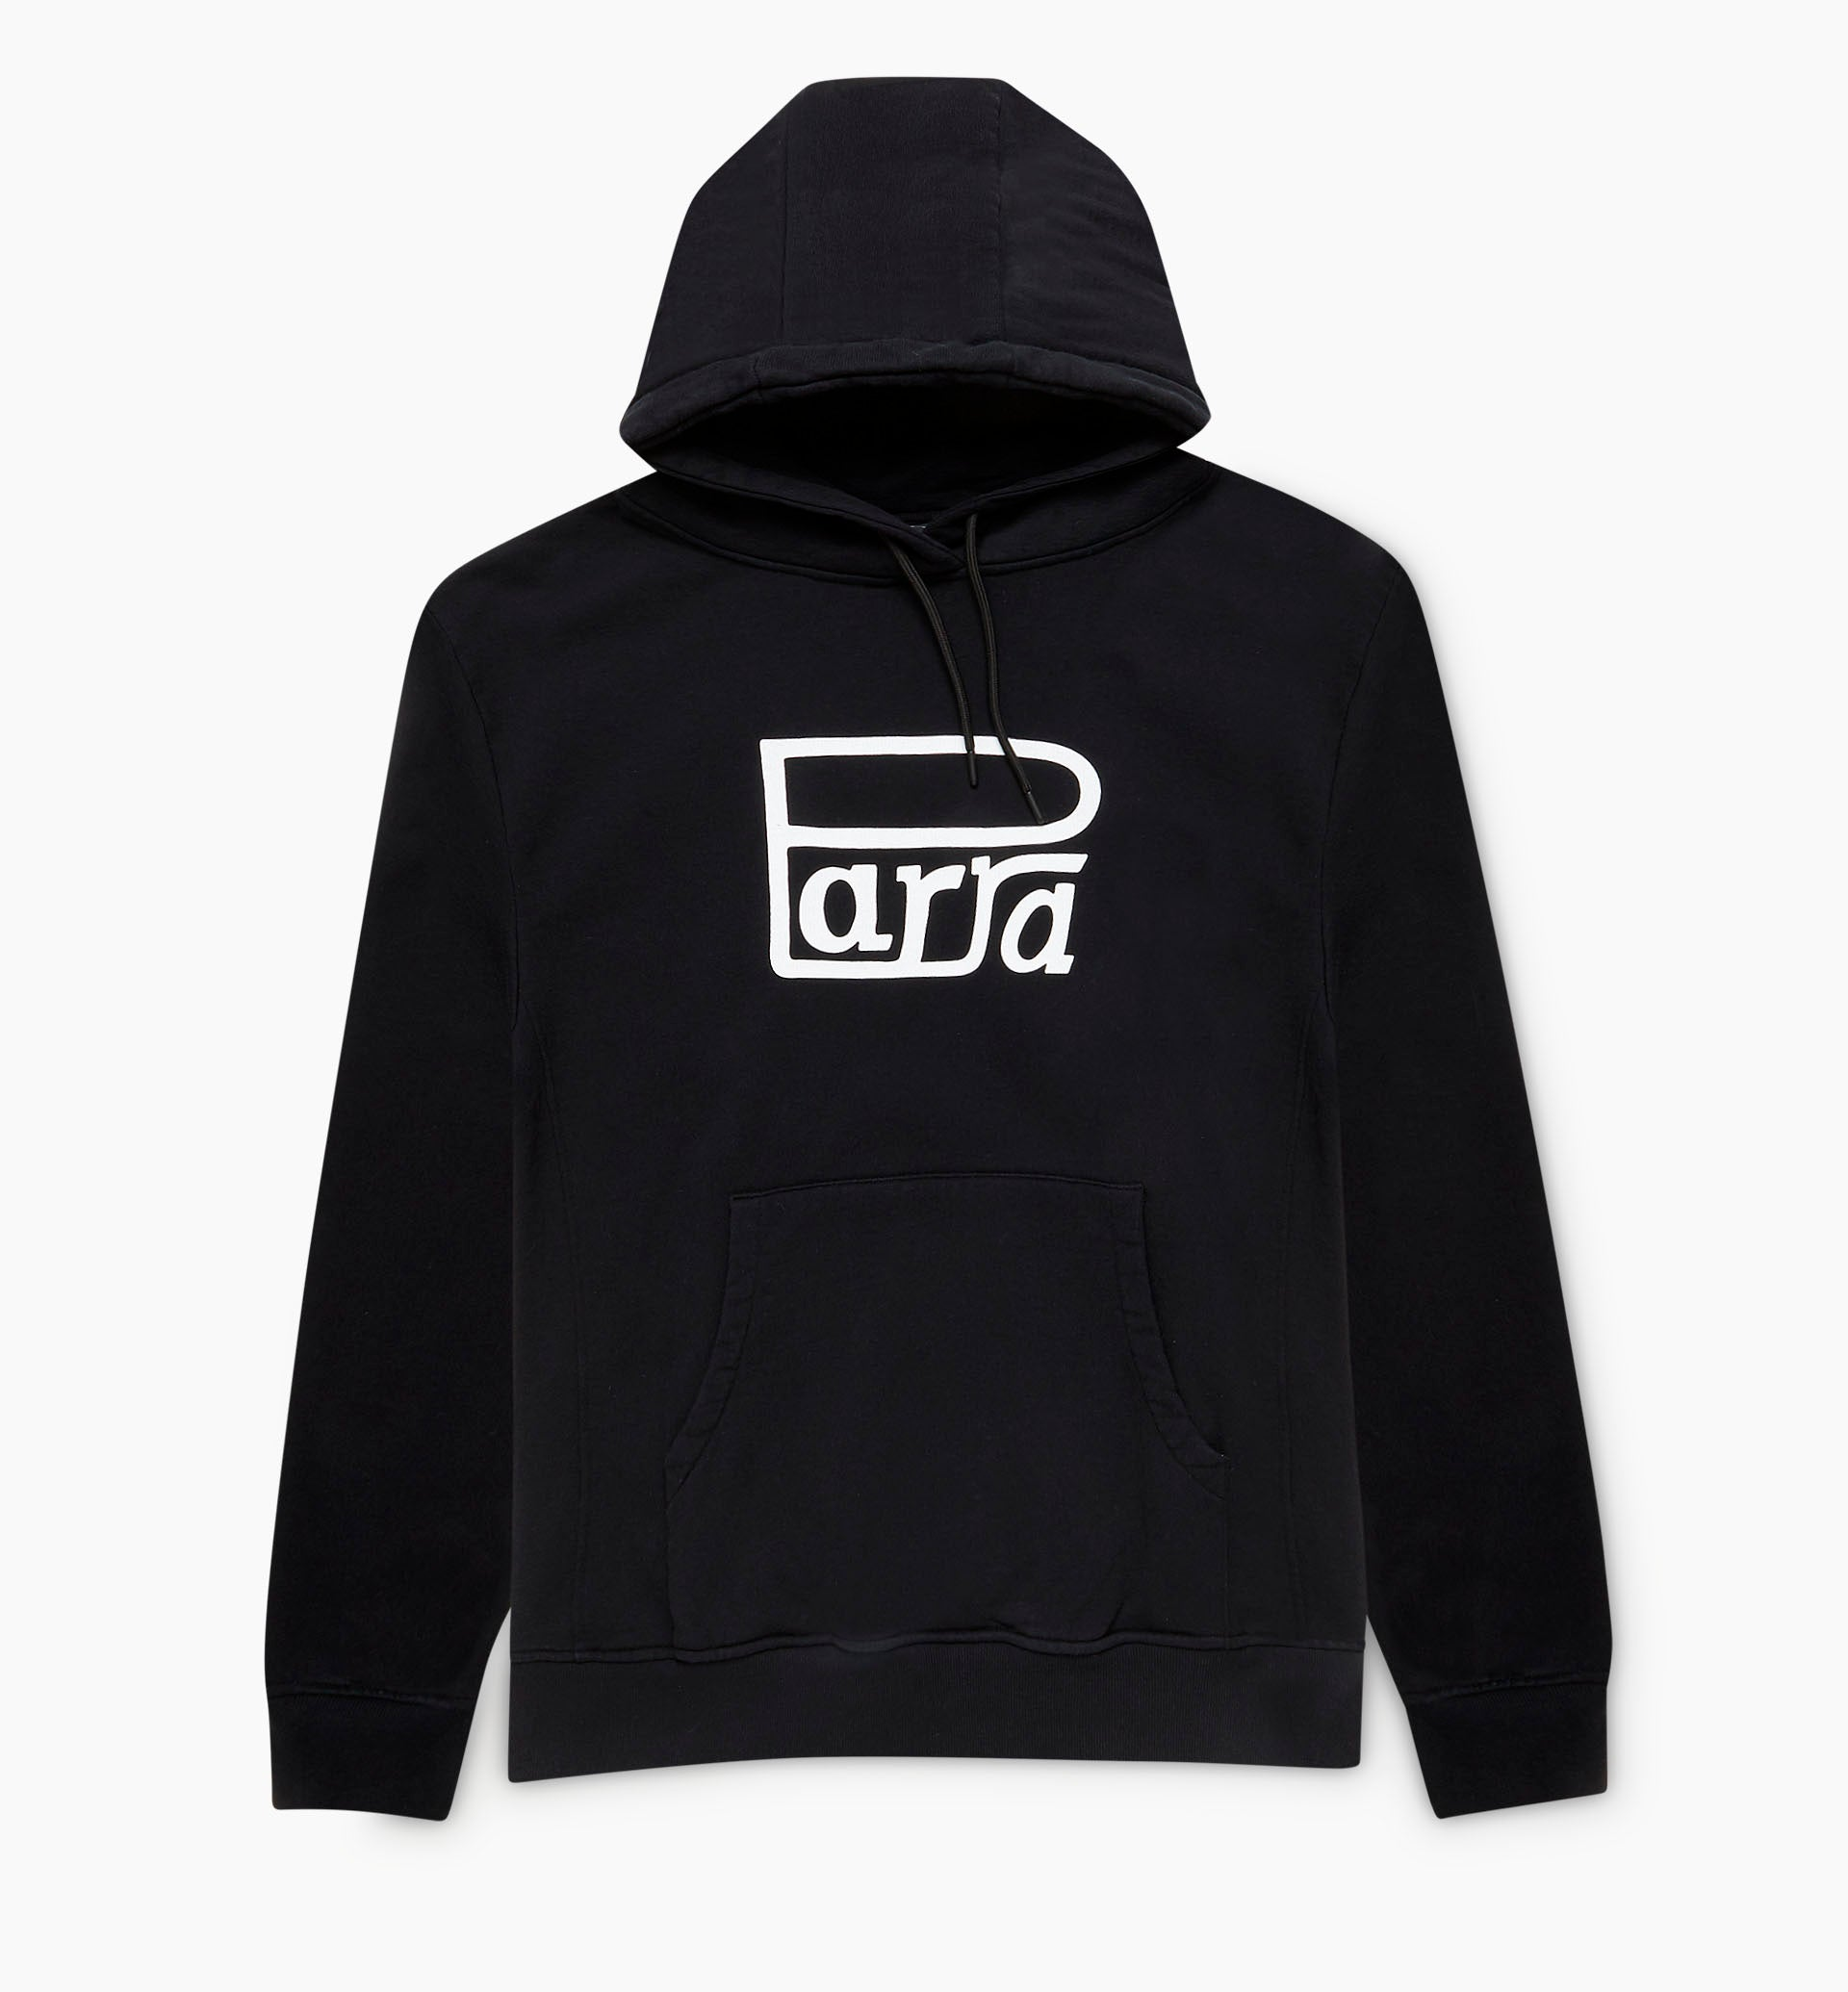 Parra - race logo hooded sweatshirt